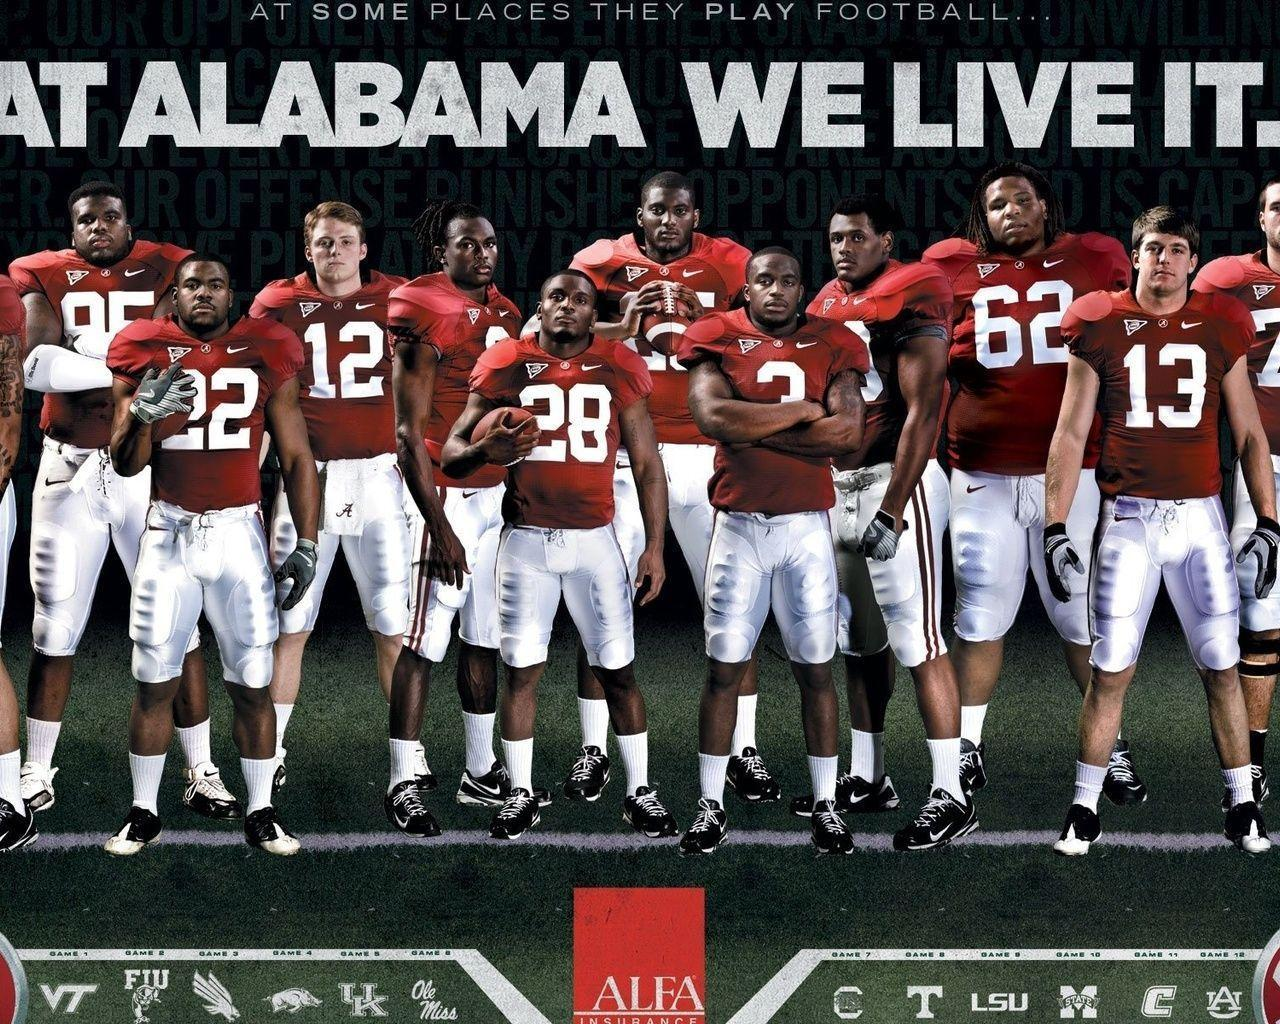 1280x1024 Football, College, Crimson Tide, Alabama Football Team